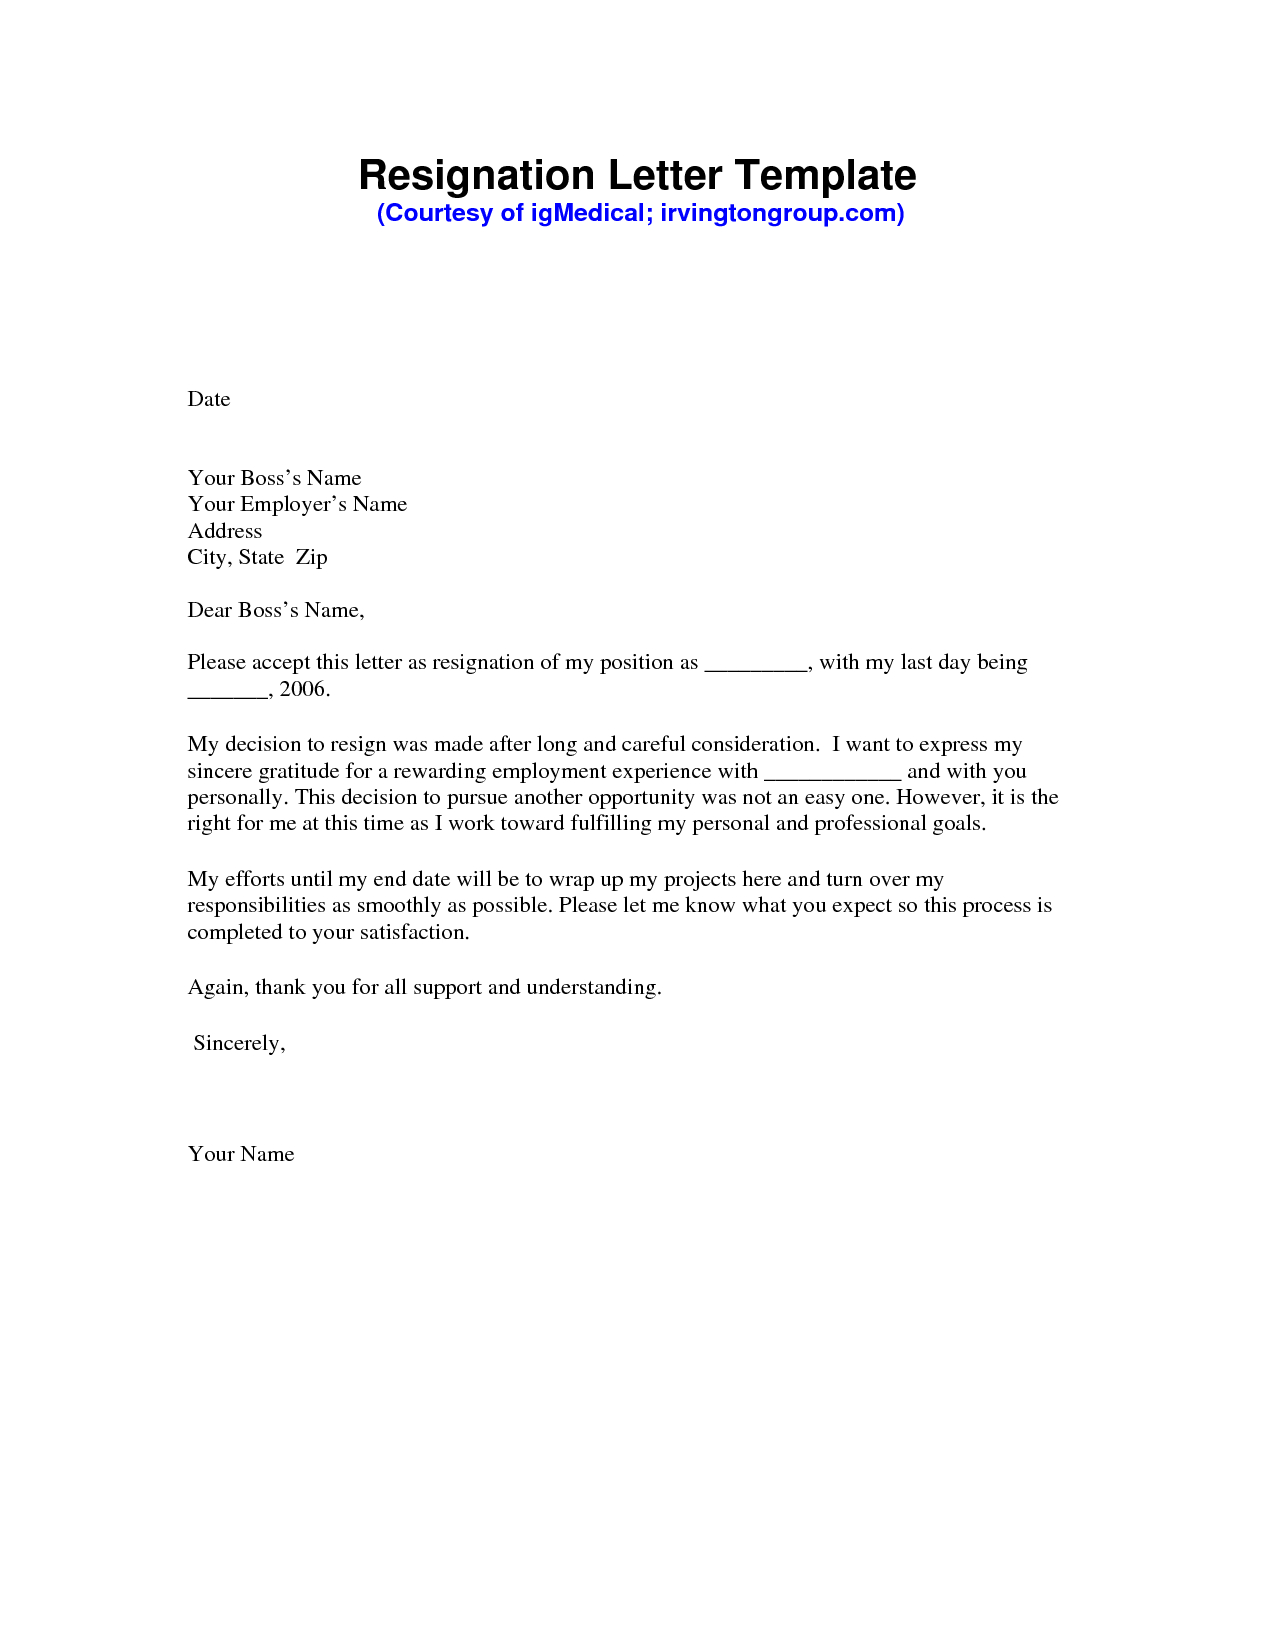 Retirement Letter to Employer Template - Resignation Letter Sample Pdf Resignation Letter